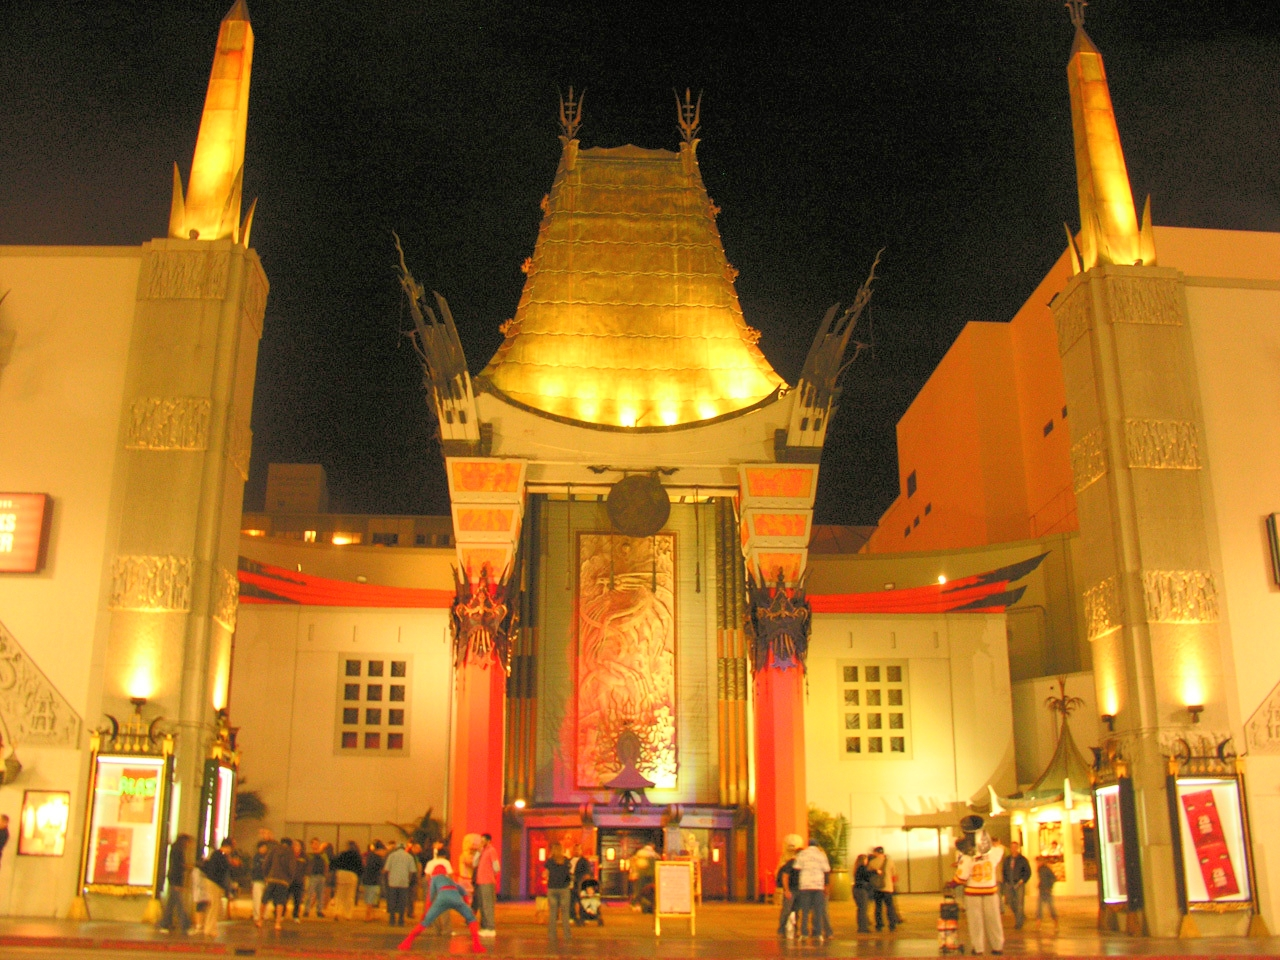 Grauman's Chinese Theater     TCL Chinese Theatre is a cinema palace on the historic Hollywood Walk of Fame at 6925 Hollywood Boulevard in Hollywood, California, United States. Originally known (and still commonly referred to) as Grauman's Chinese Theatre, it was renamed Mann's Chinese Theatre in 1973; the name lasted until 2001, after which it reverted to its original name.